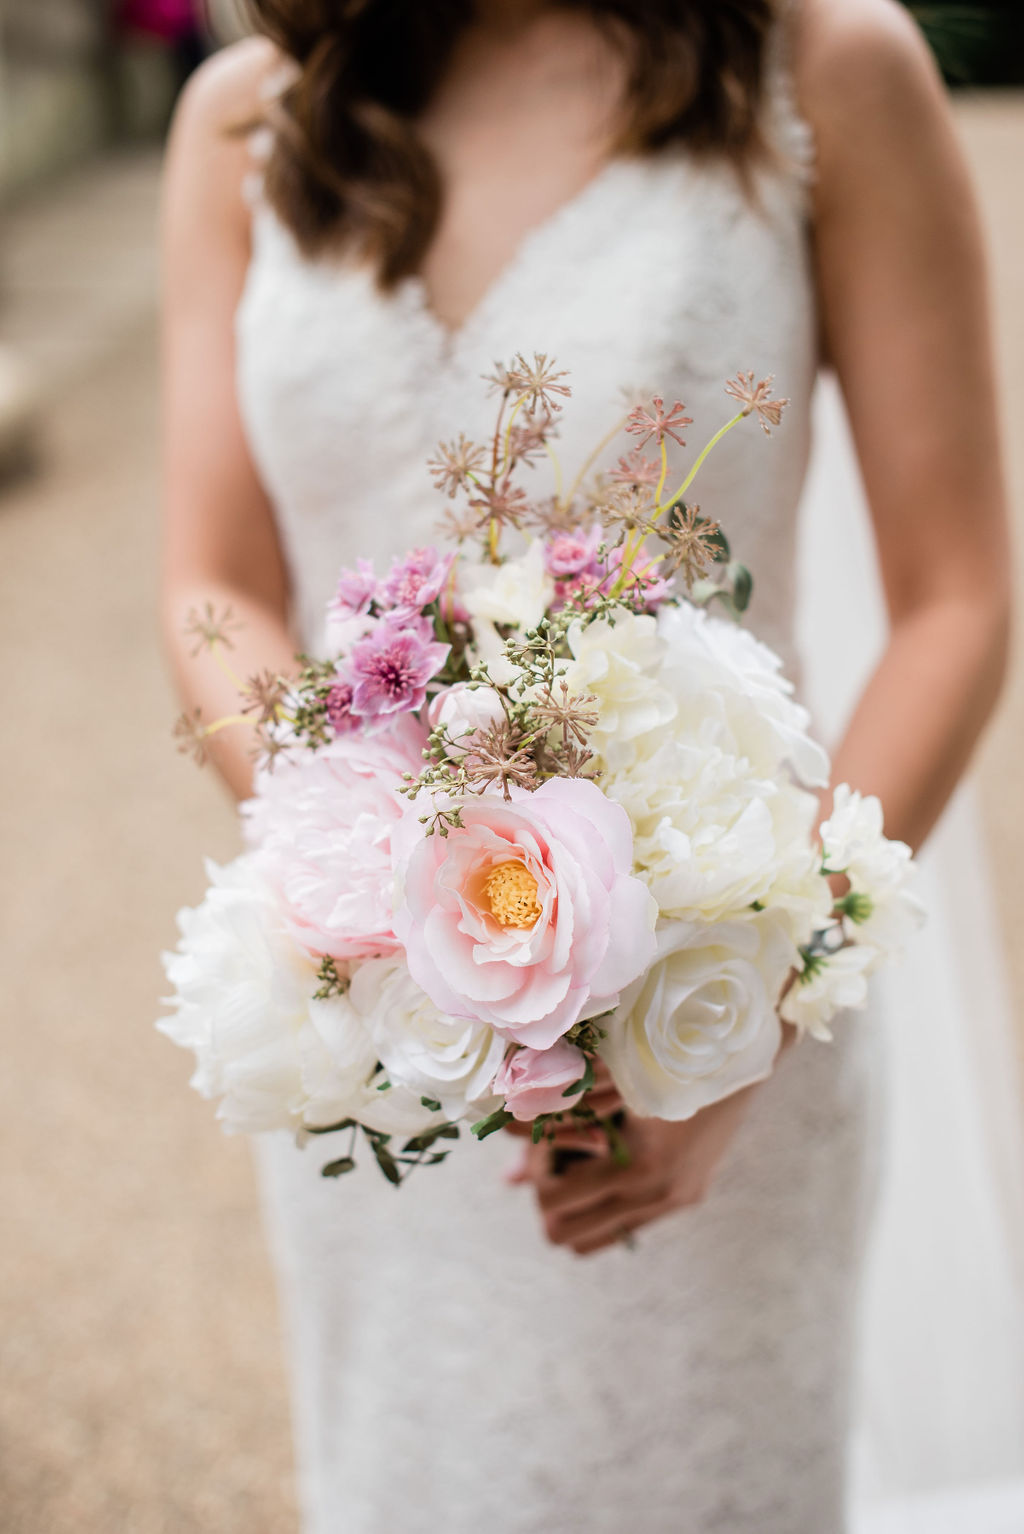 Summer bridal bouquet at Chiswick House, London